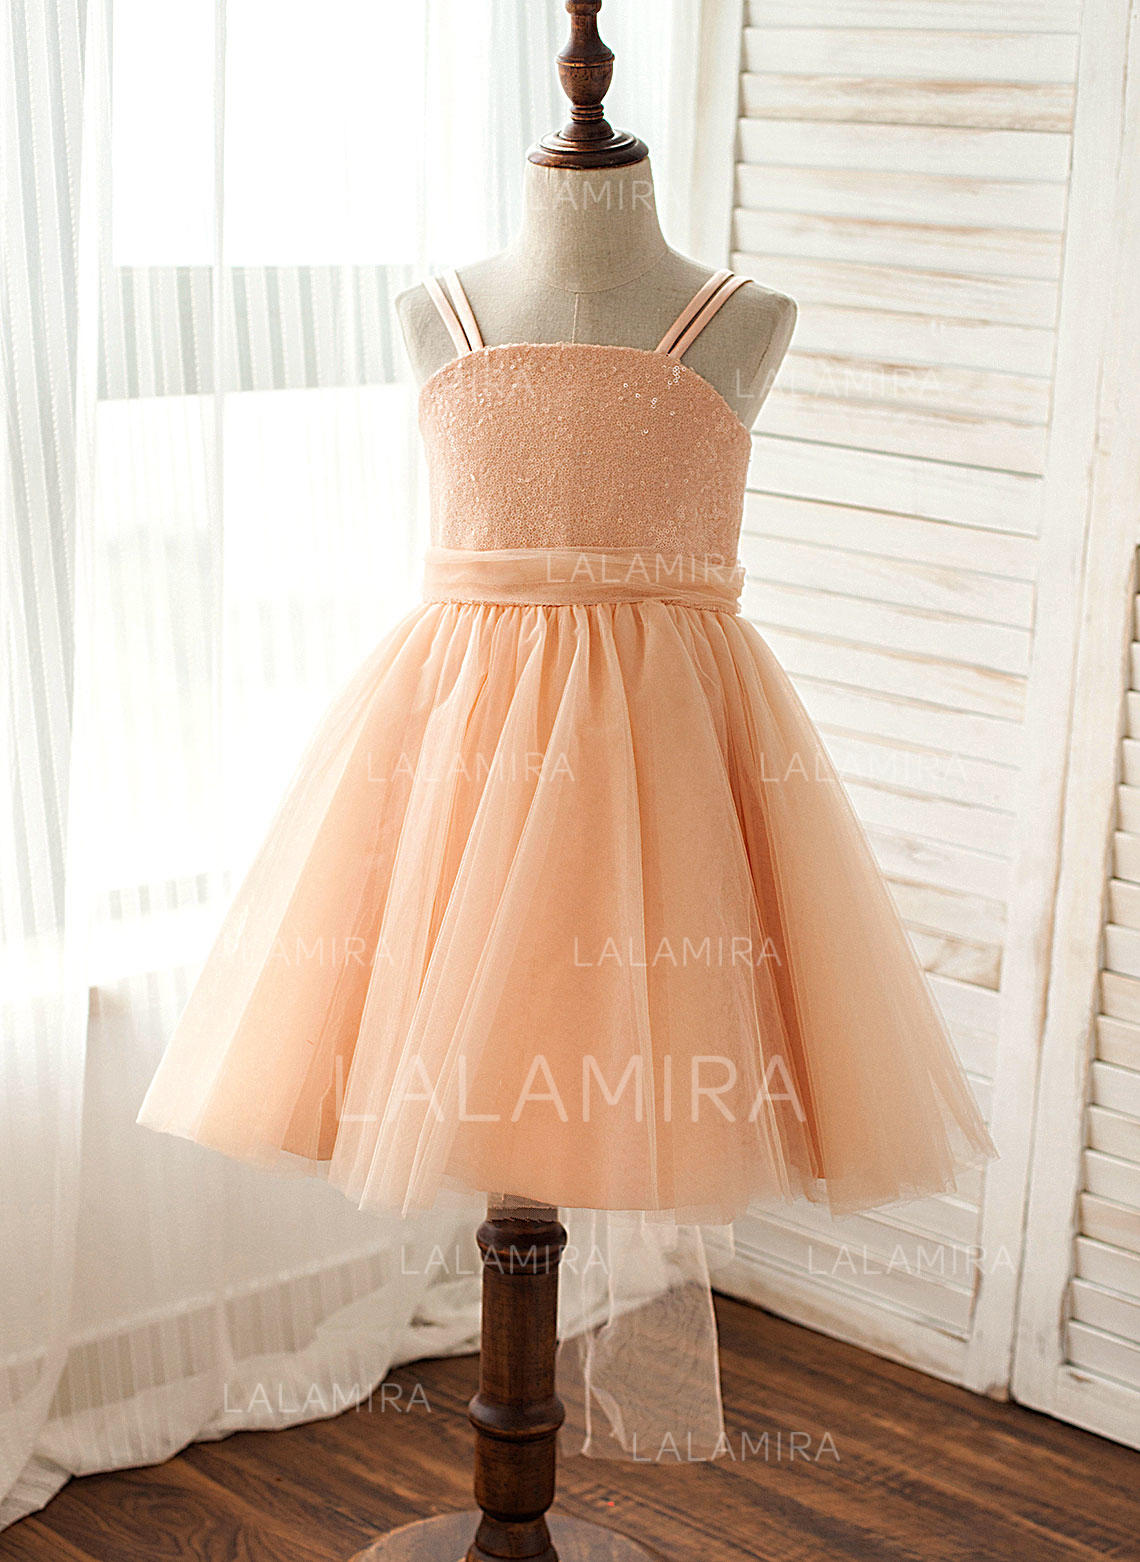 b4d279bee3c8b Straps A-Line/Princess Flower Girl Dresses Tulle/Sequined Sequins  Sleeveless Knee-. Loading zoom